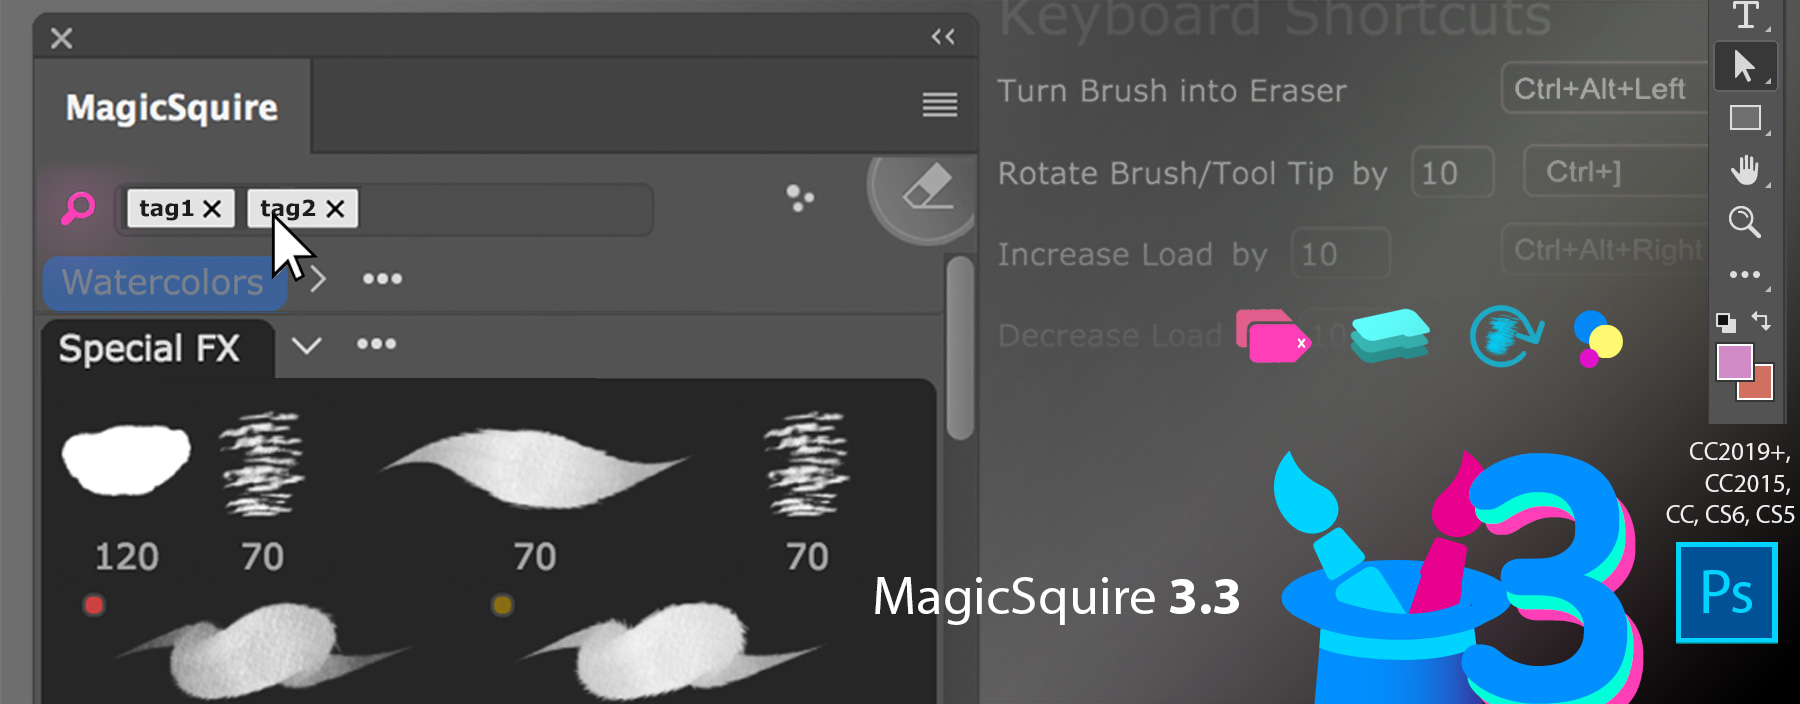 MagicSquire professional brush manager update 3.3